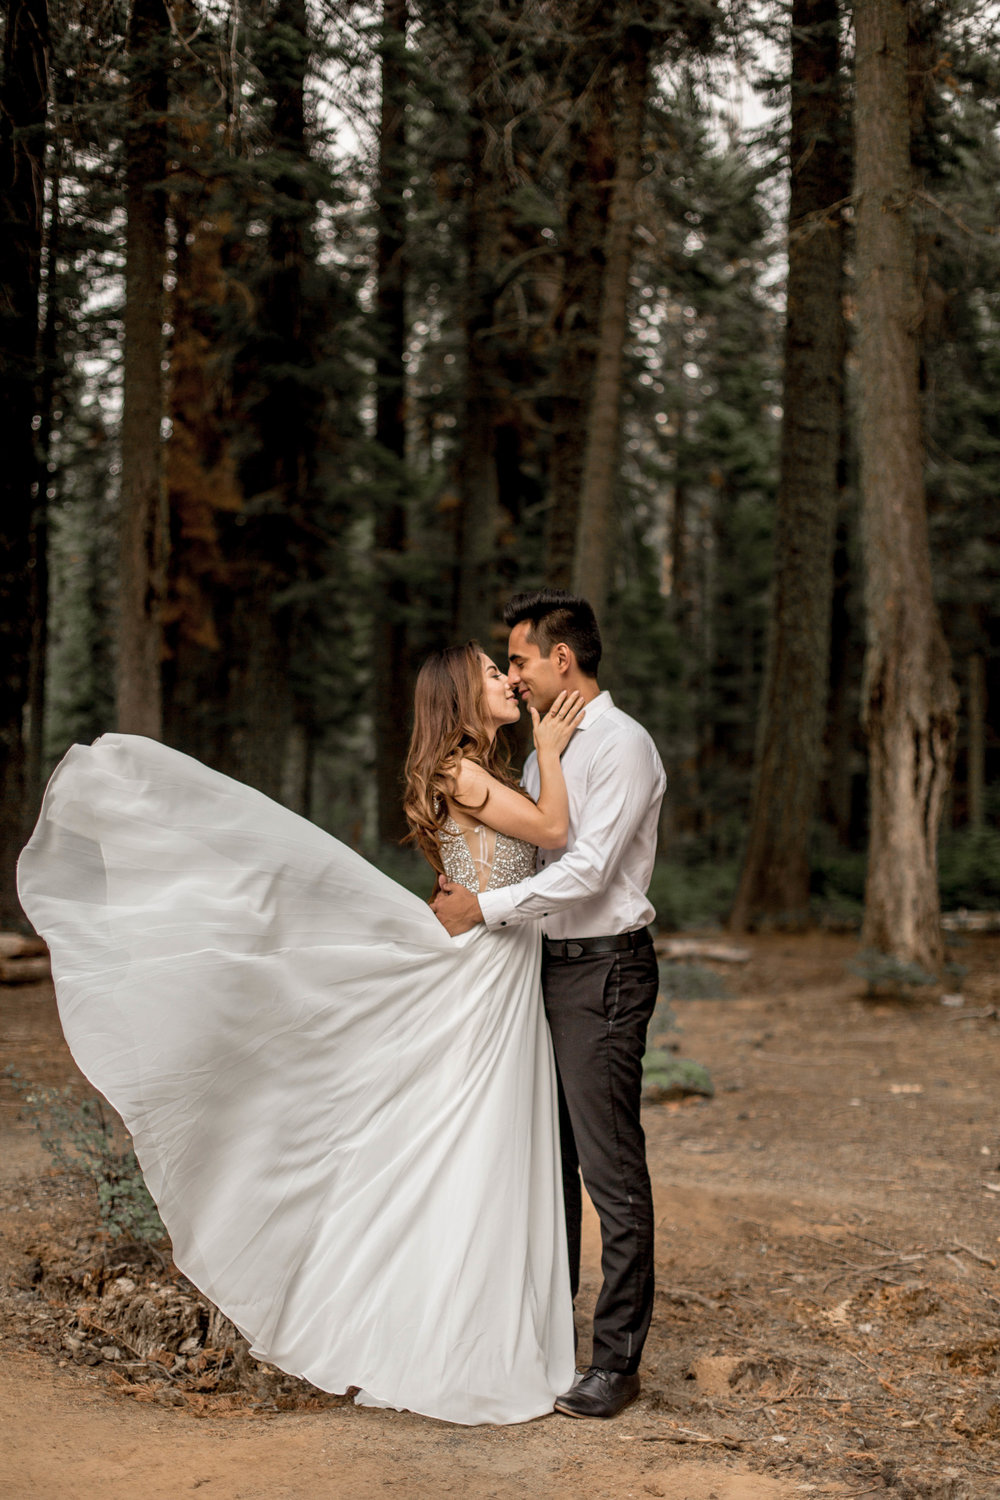 Nicole-Daacke-Photography-Yosemite-Aventurous-Elopement-Photographer-Photography-Authentic-Glam-Love-National-Parks-1165.jpg